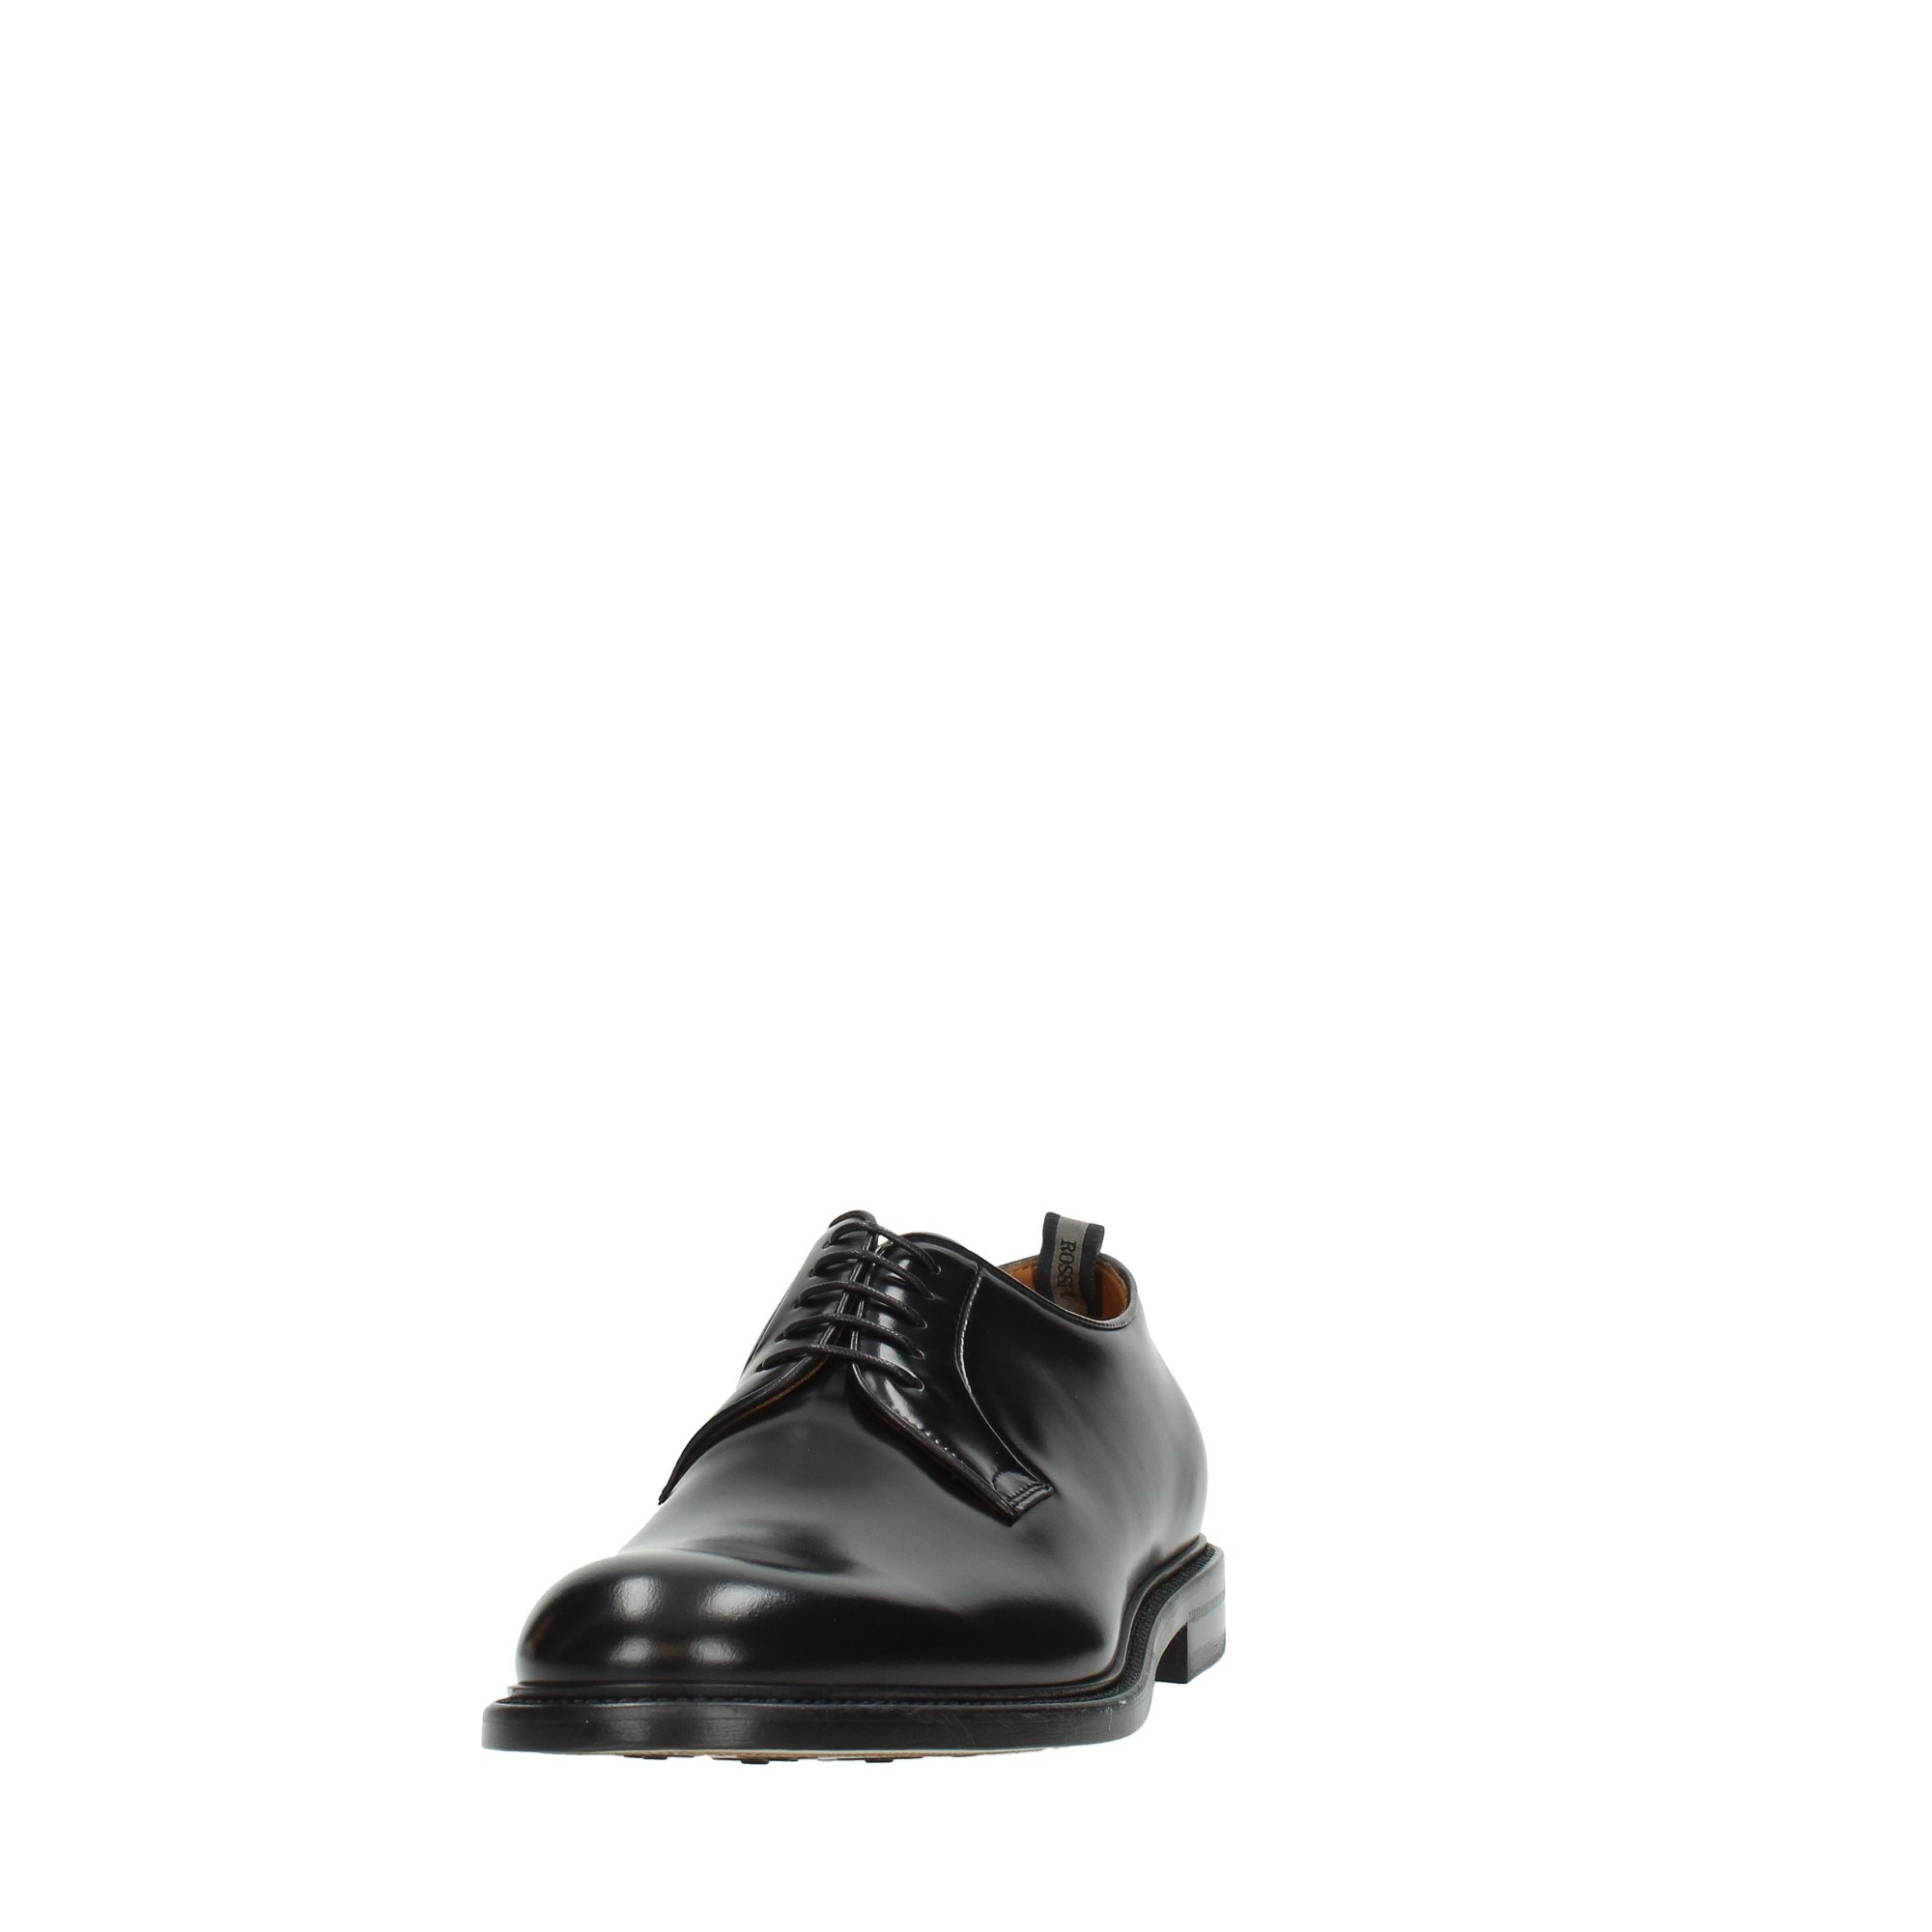 Rossi Shoes Man Laced Black 8699